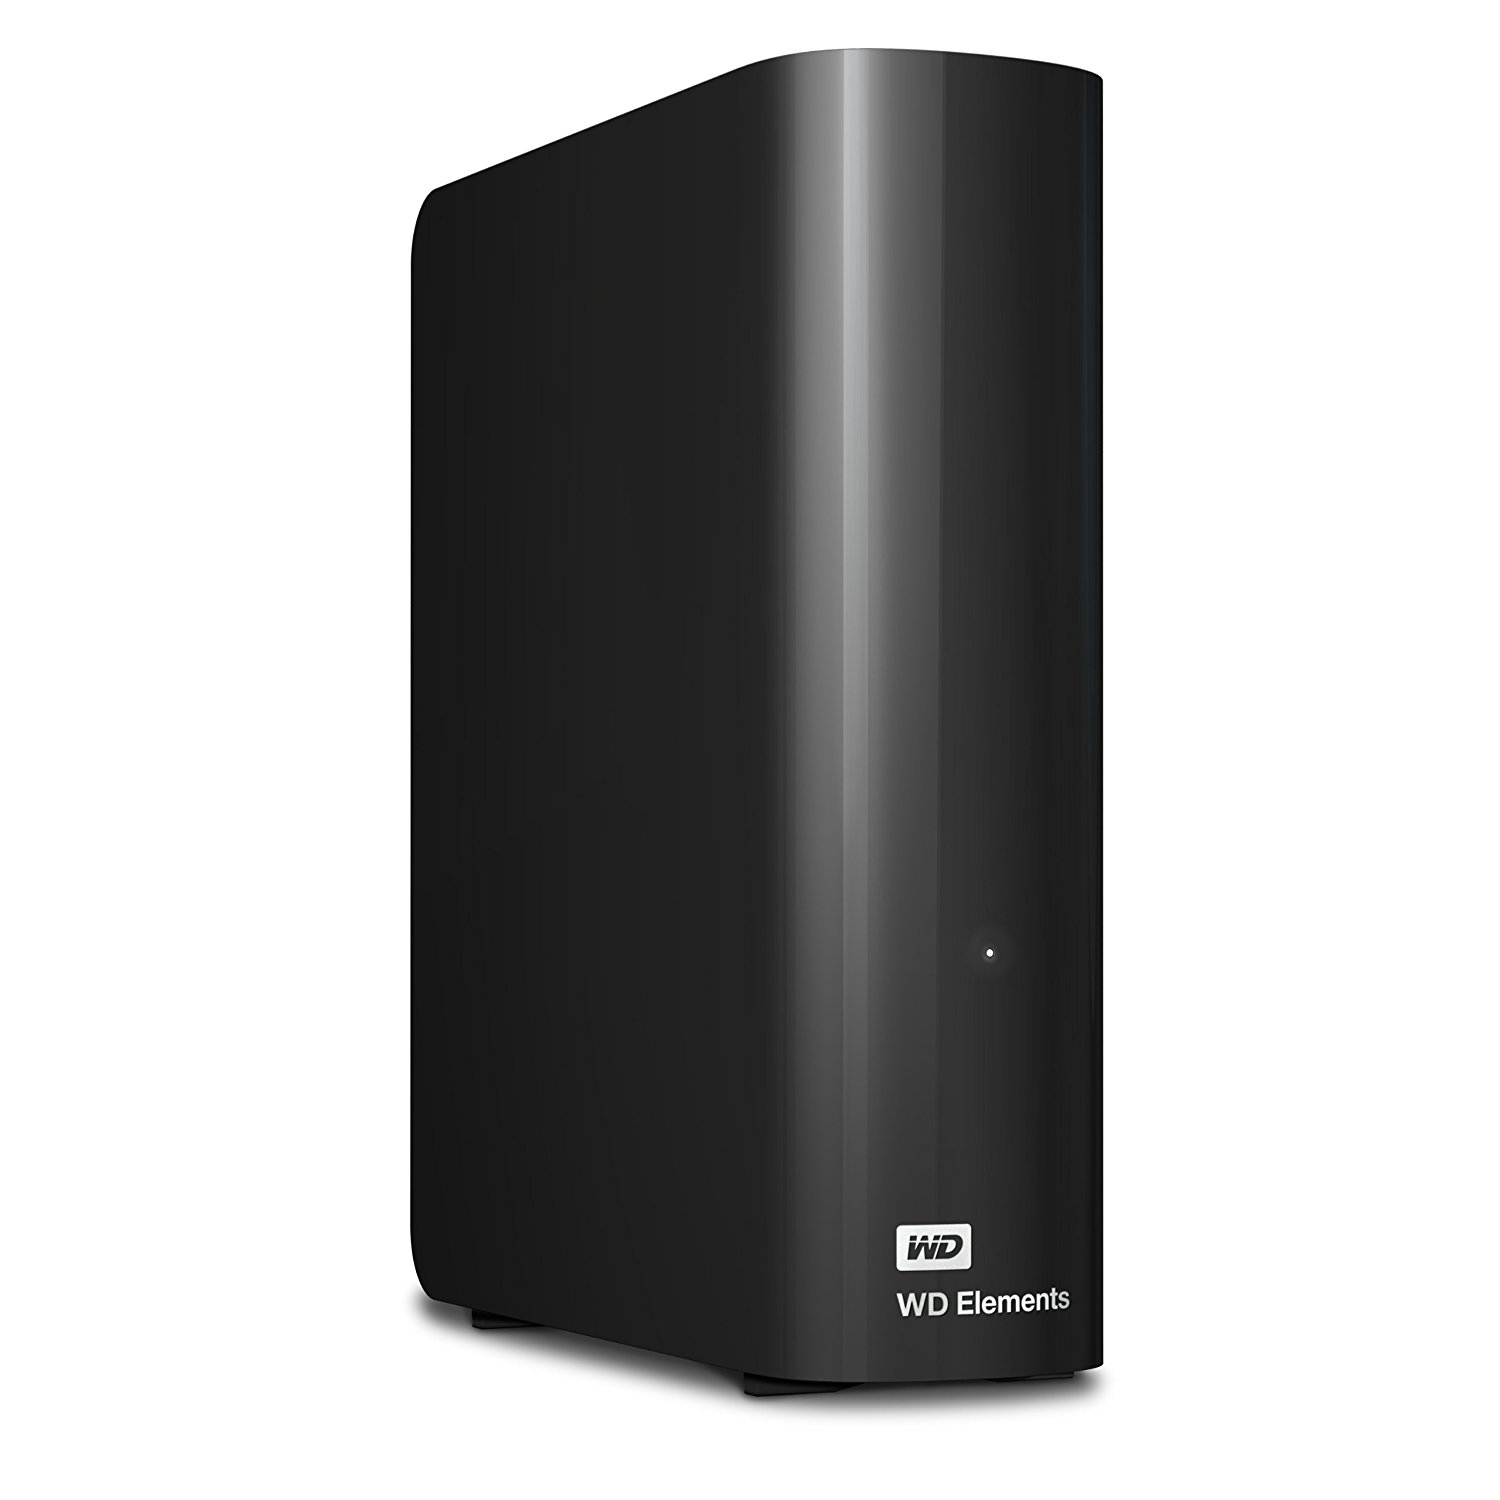 Western Digital Festplatte amazon